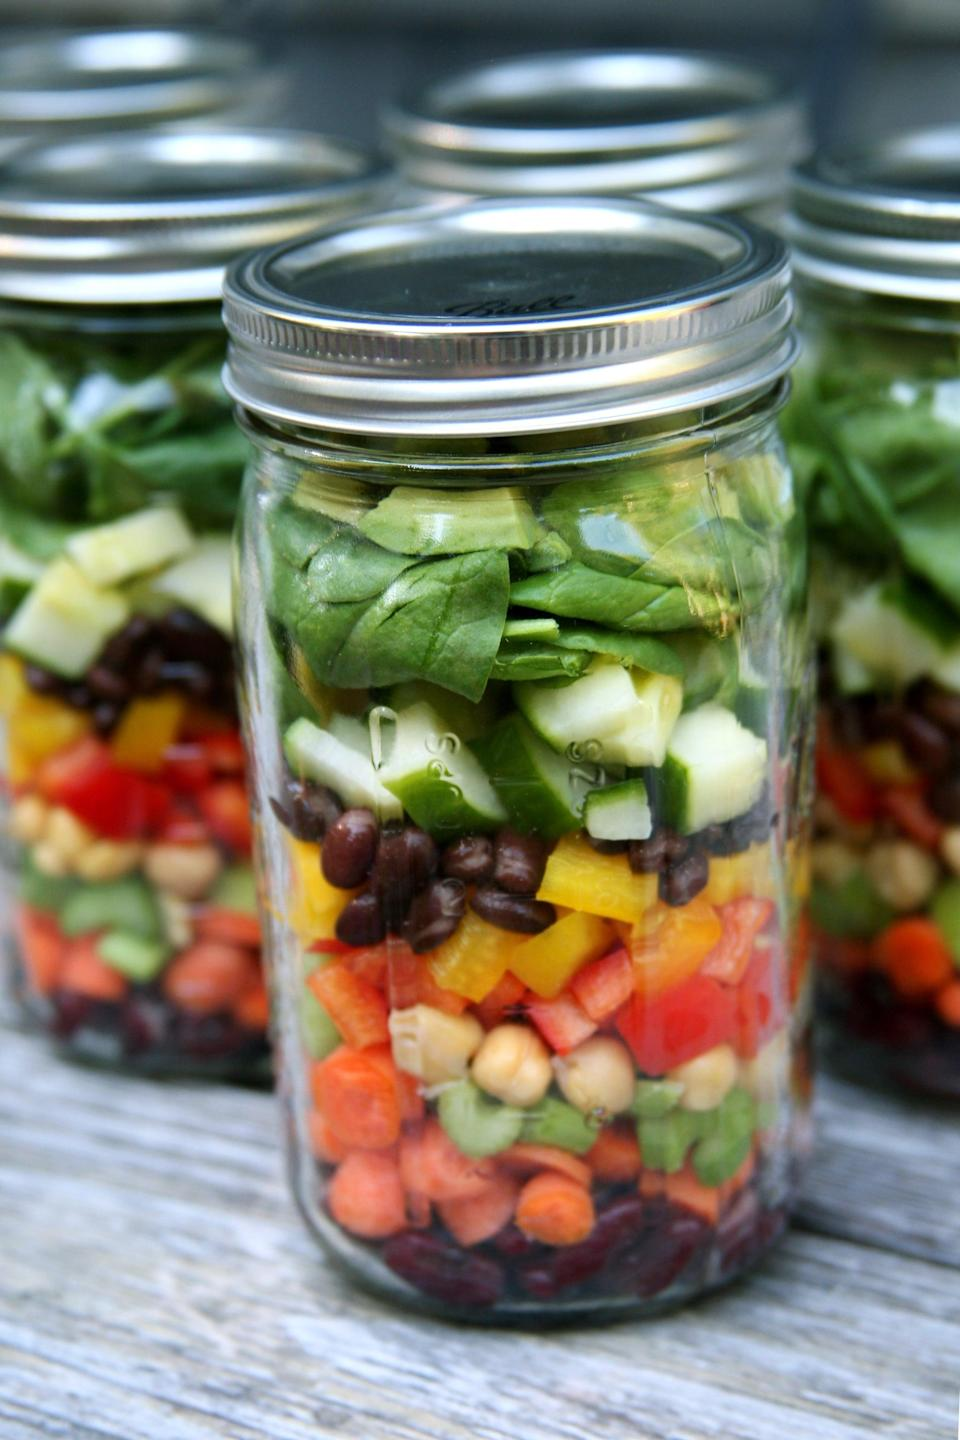 "<p>When you eat one huge salad for a meal each day, you'll not only get your fill of veggies and fiber, but you'll also feel lighter and more energetic afterward. Make this happen by <a href=""https://www.popsugar.com/fitness/How-Pack-Salads-Week-34675868"" class=""link rapid-noclick-resp"" rel=""nofollow noopener"" target=""_blank"" data-ylk=""slk:prepping a week's worth of salads all at once"">prepping a week's worth of salads all at once</a>.</p>"